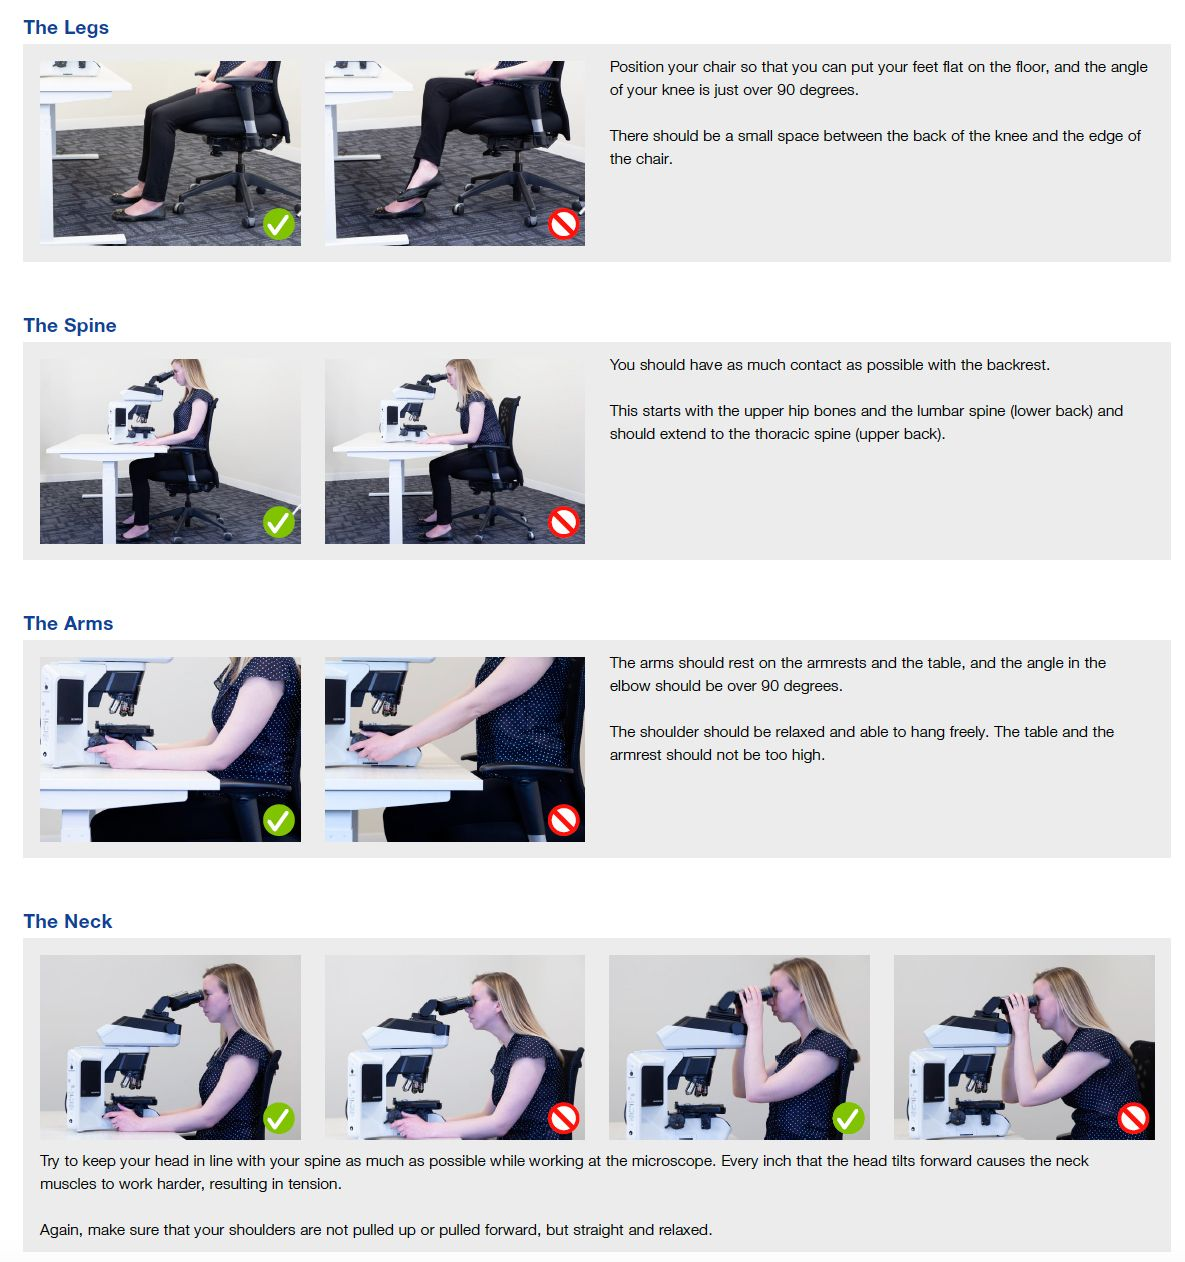 Educational poster defining the ergonomically ideal posture positions for routine microscopy to prevent work-related strain and injury